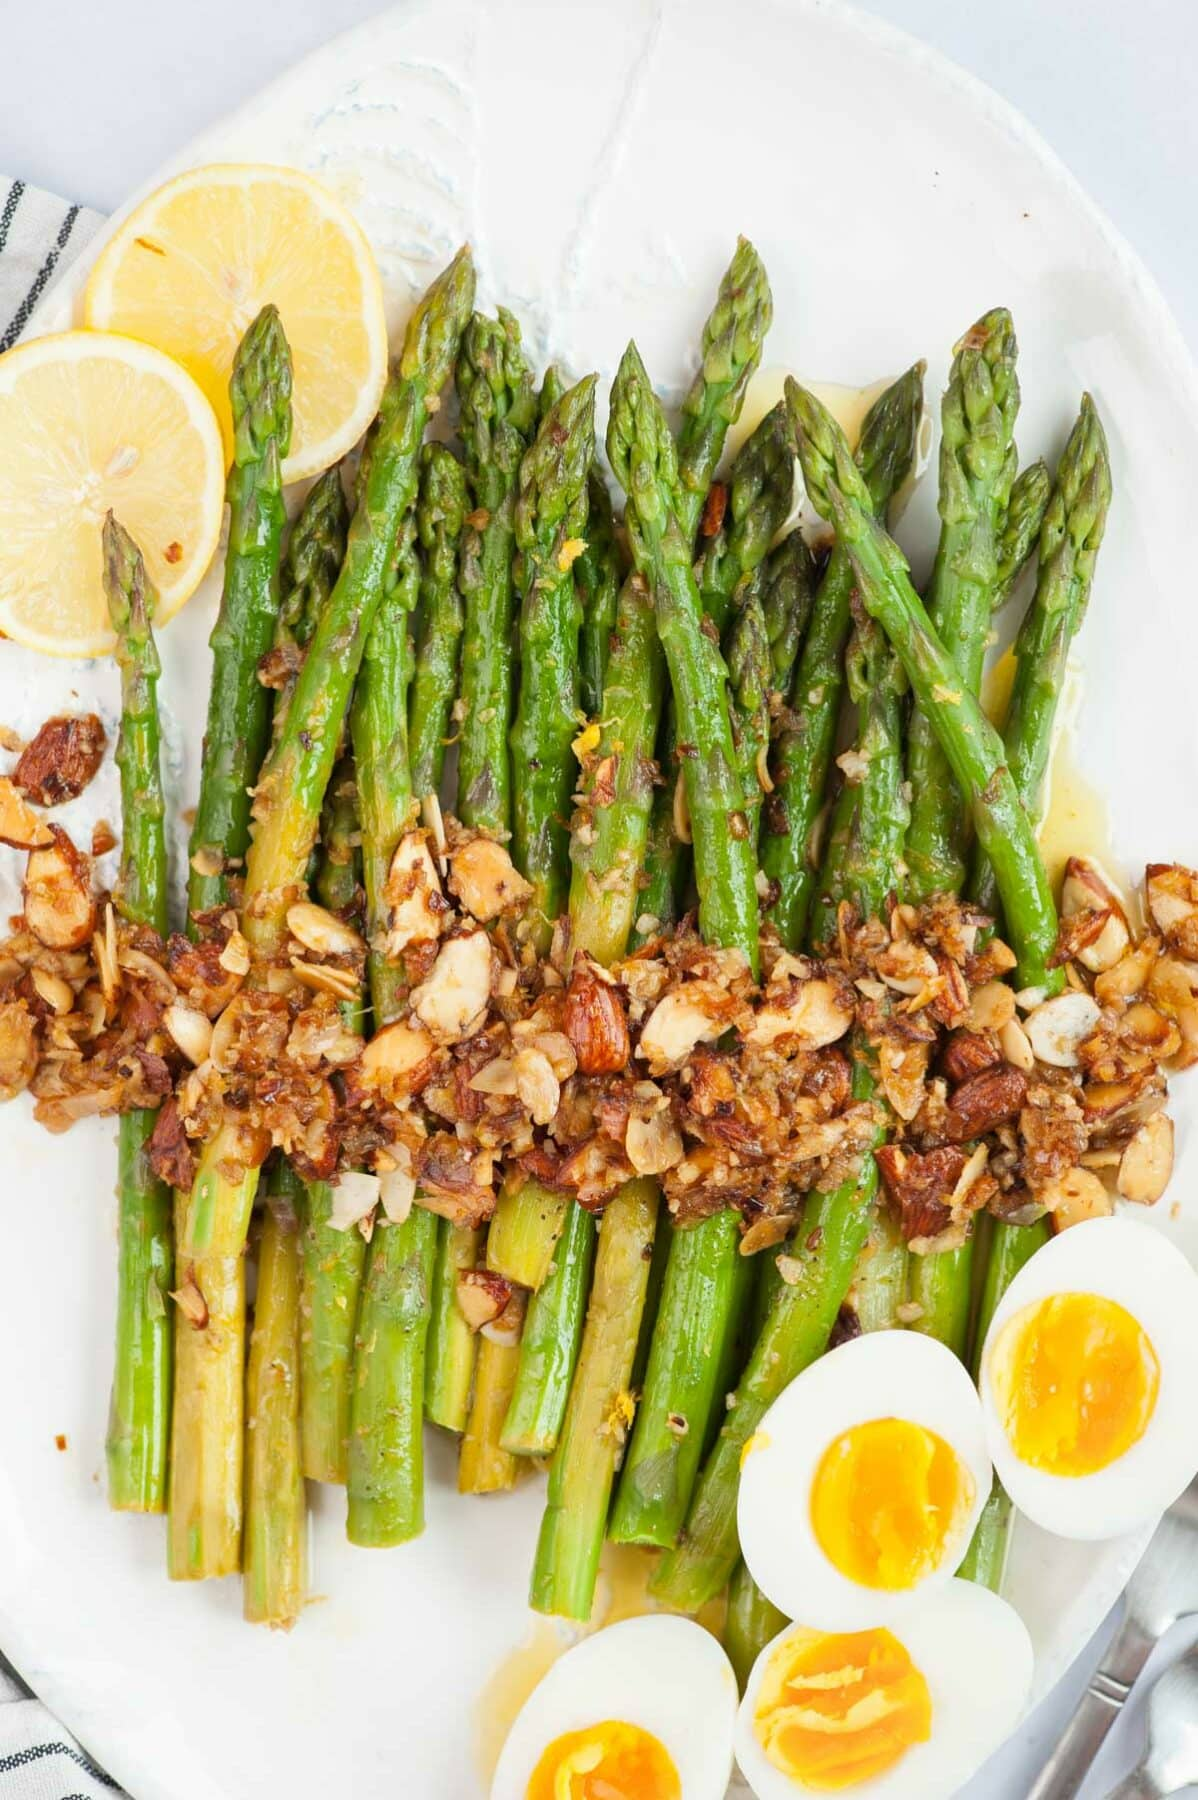 Asparagus almondine on a white plate with lemon slices and halved eggs on the side.